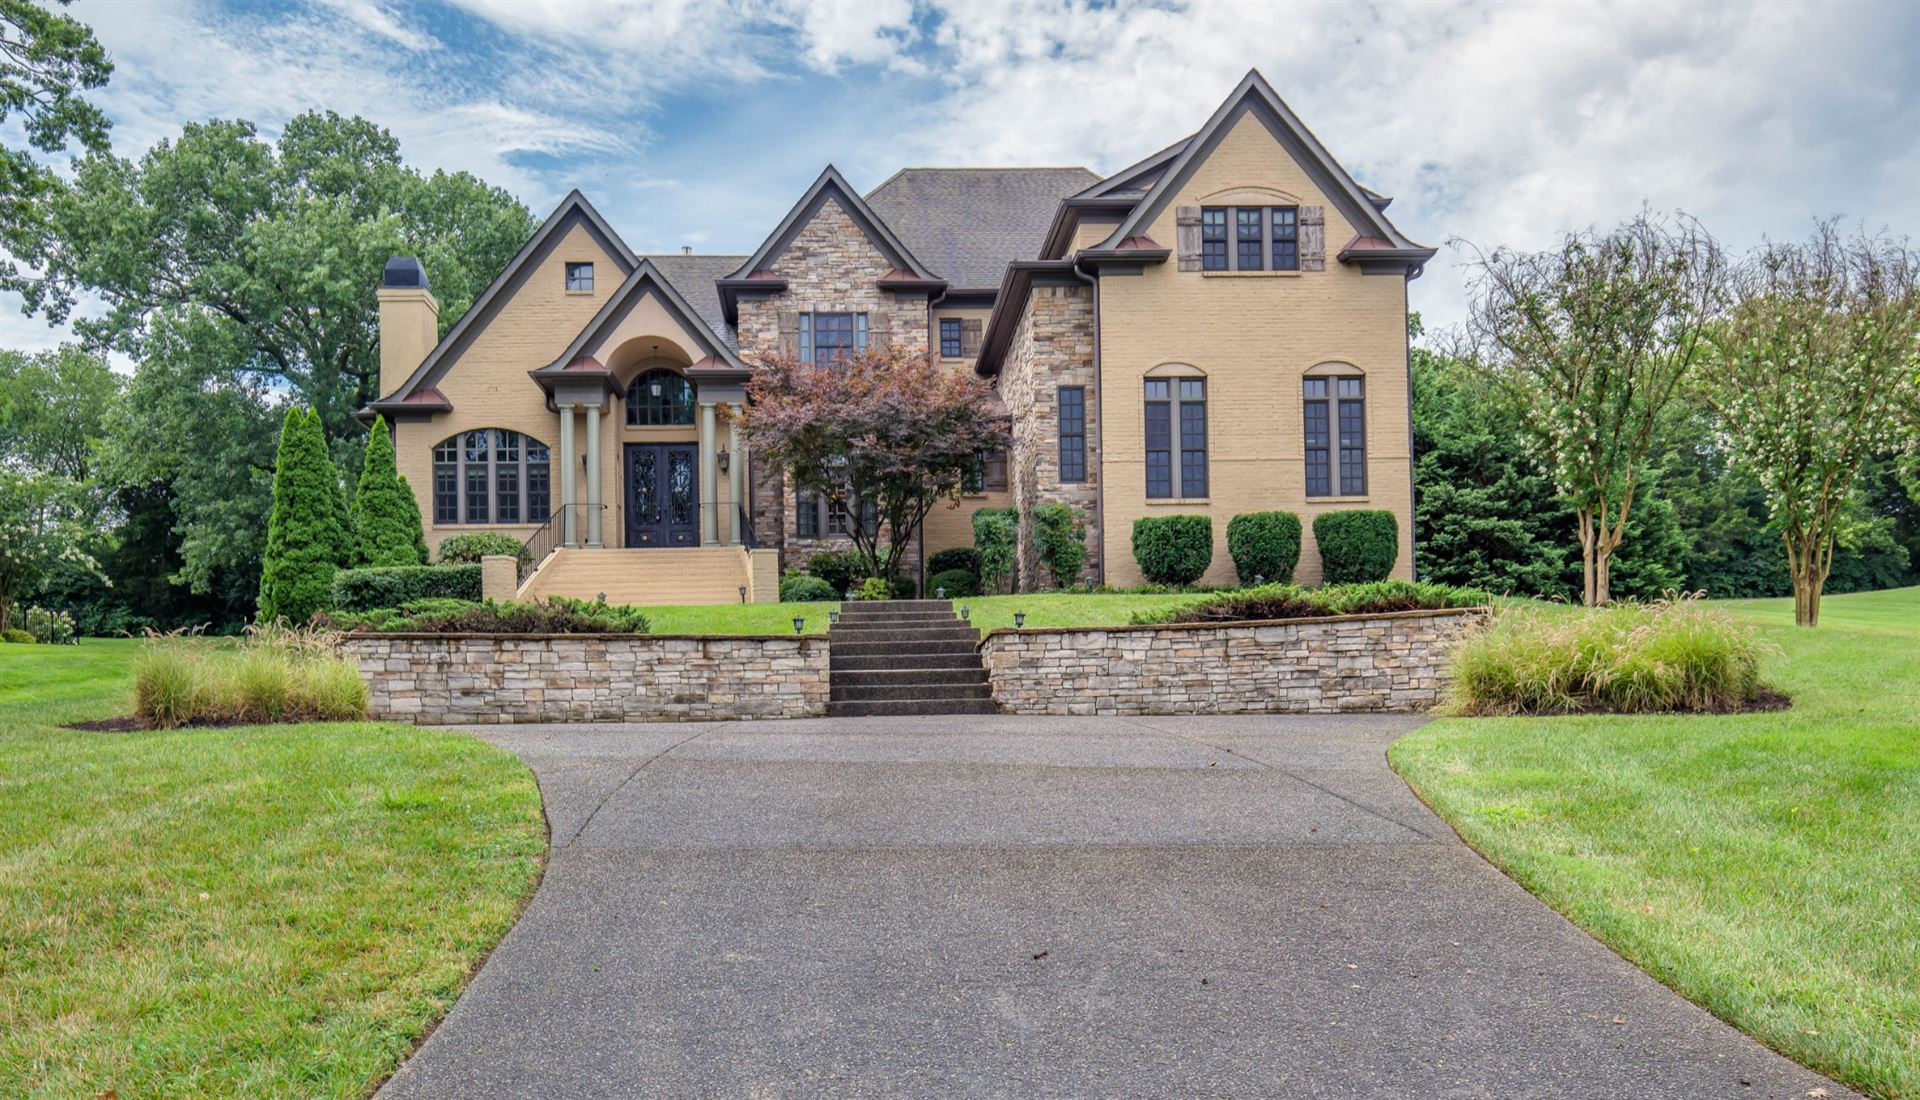 9201 Selkirk Ct, Brentwood, TN 37027 - MLS#: 2173310